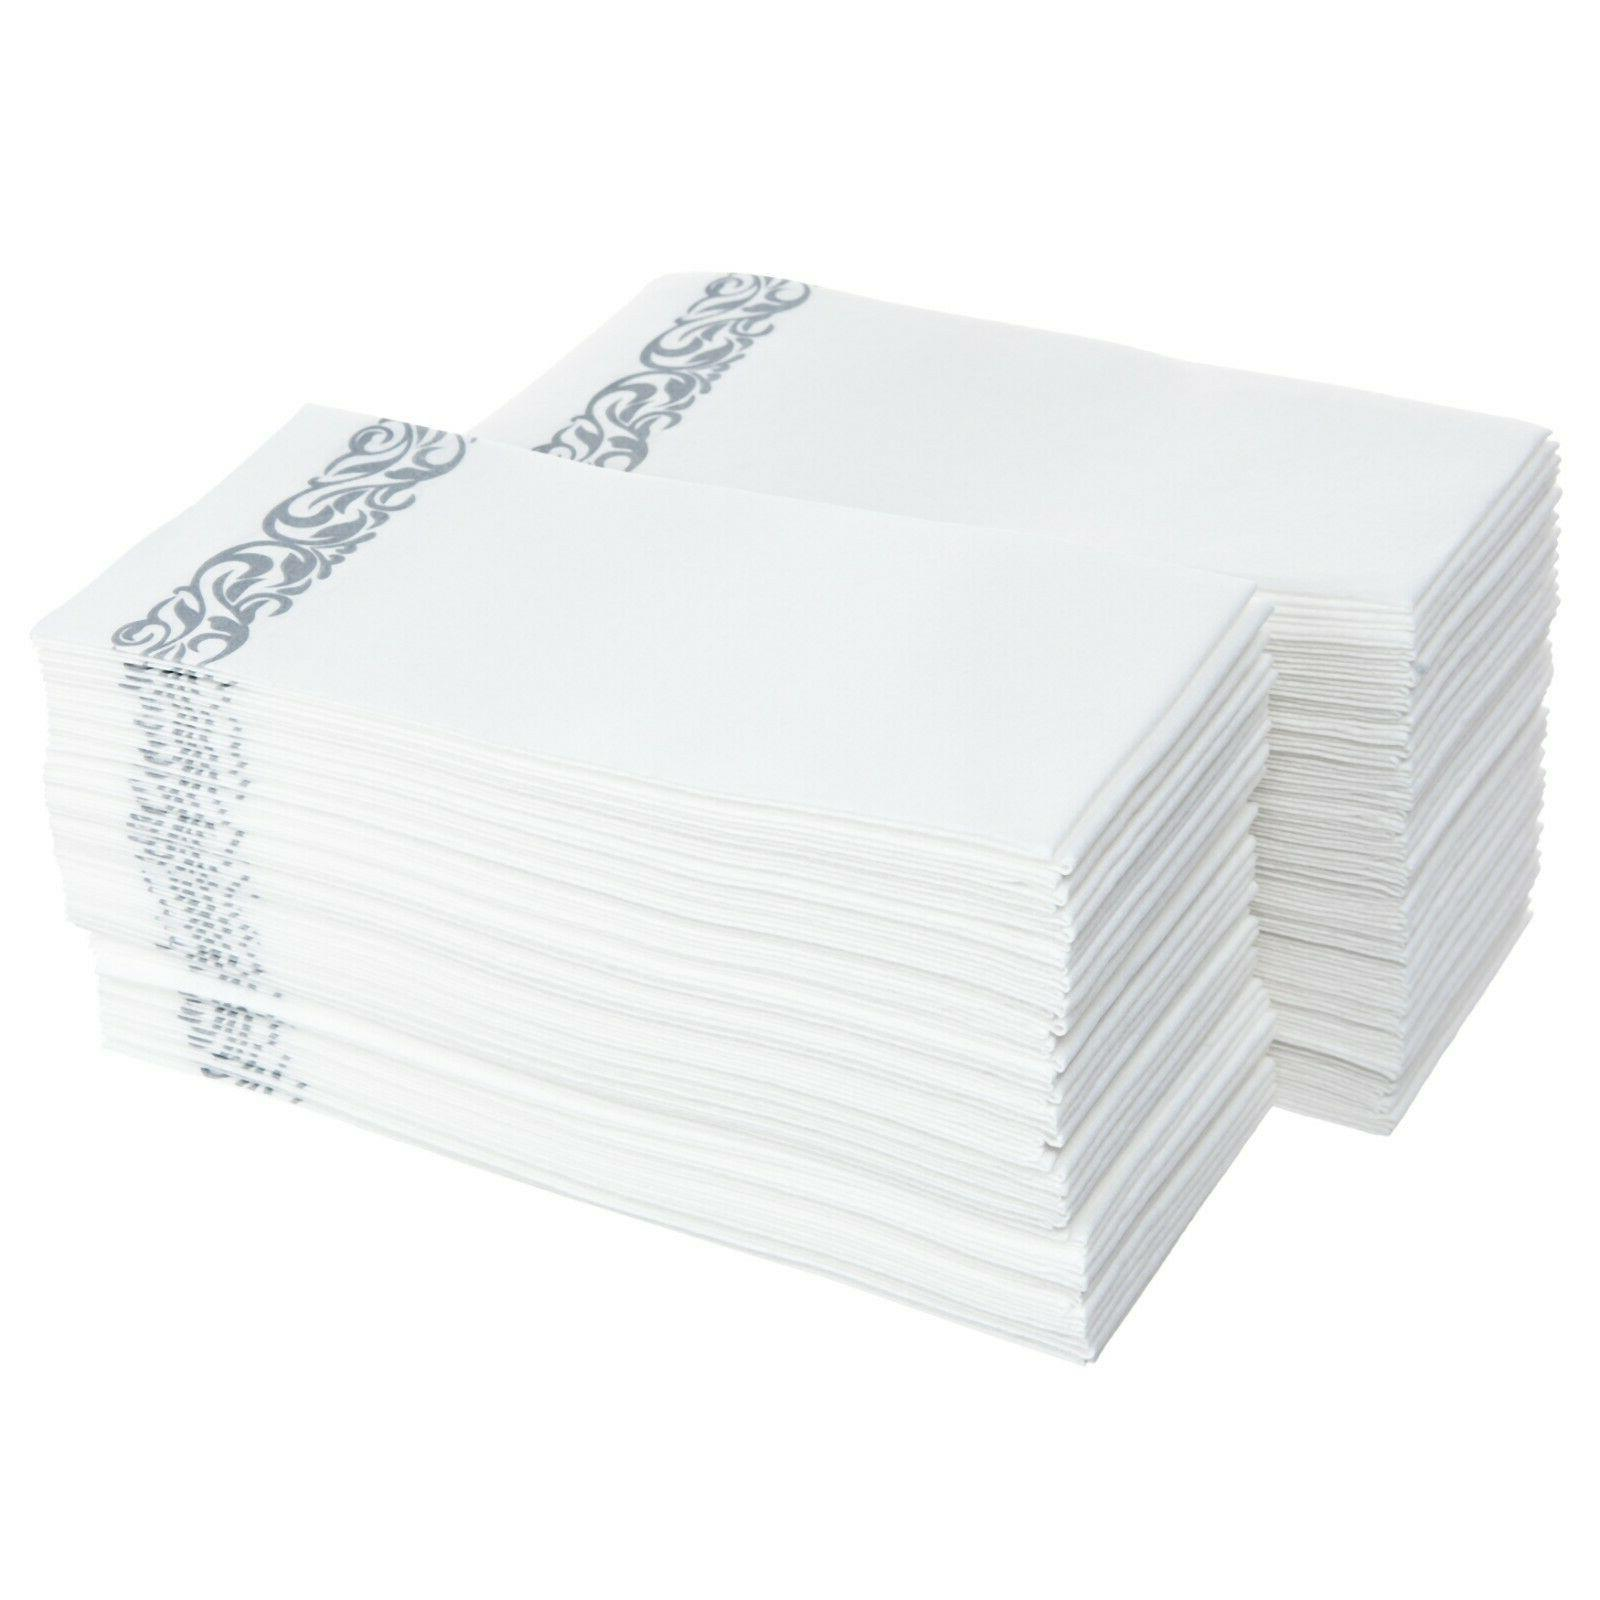 Disposable Hand Towels Guest by ACK